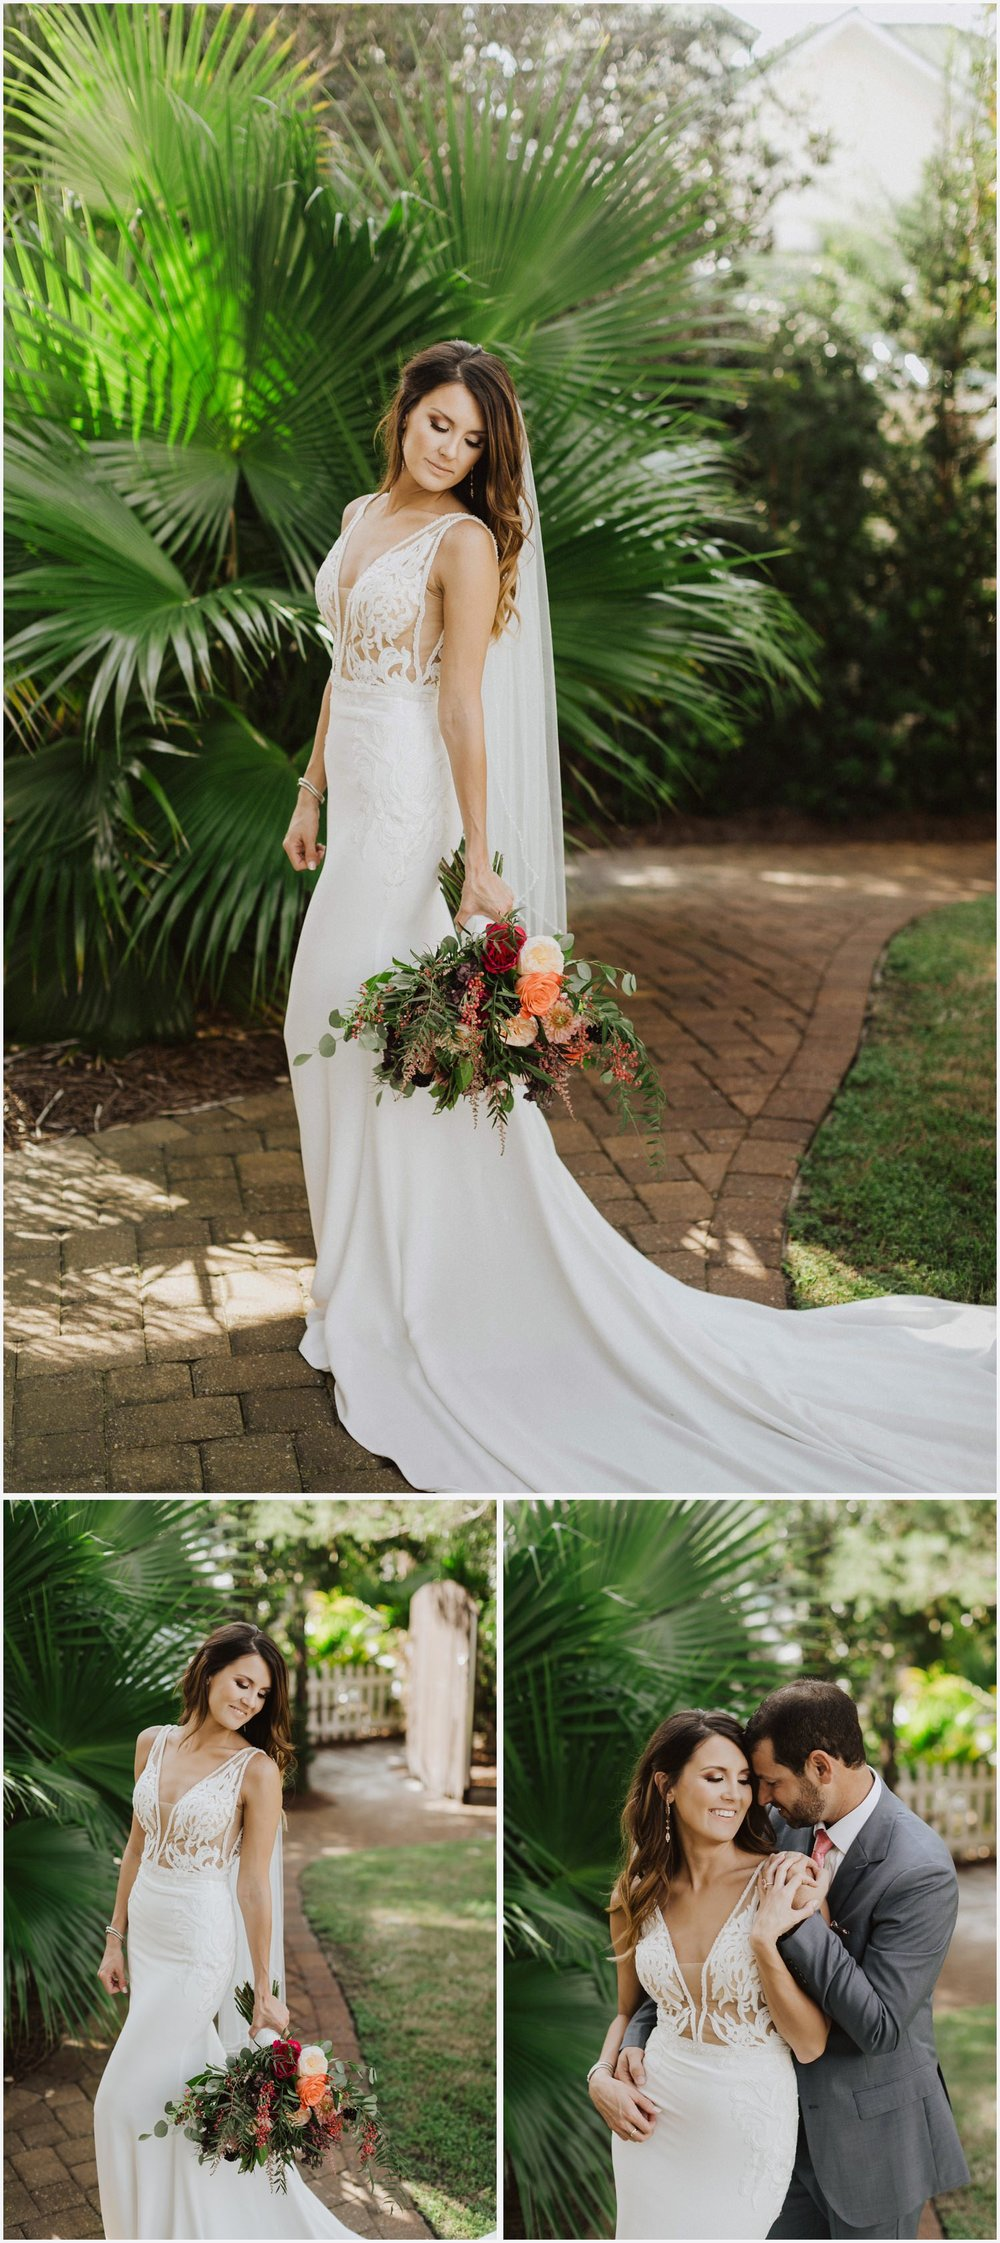 Bride and groom's wedding portraits at their Rosemary Beach house